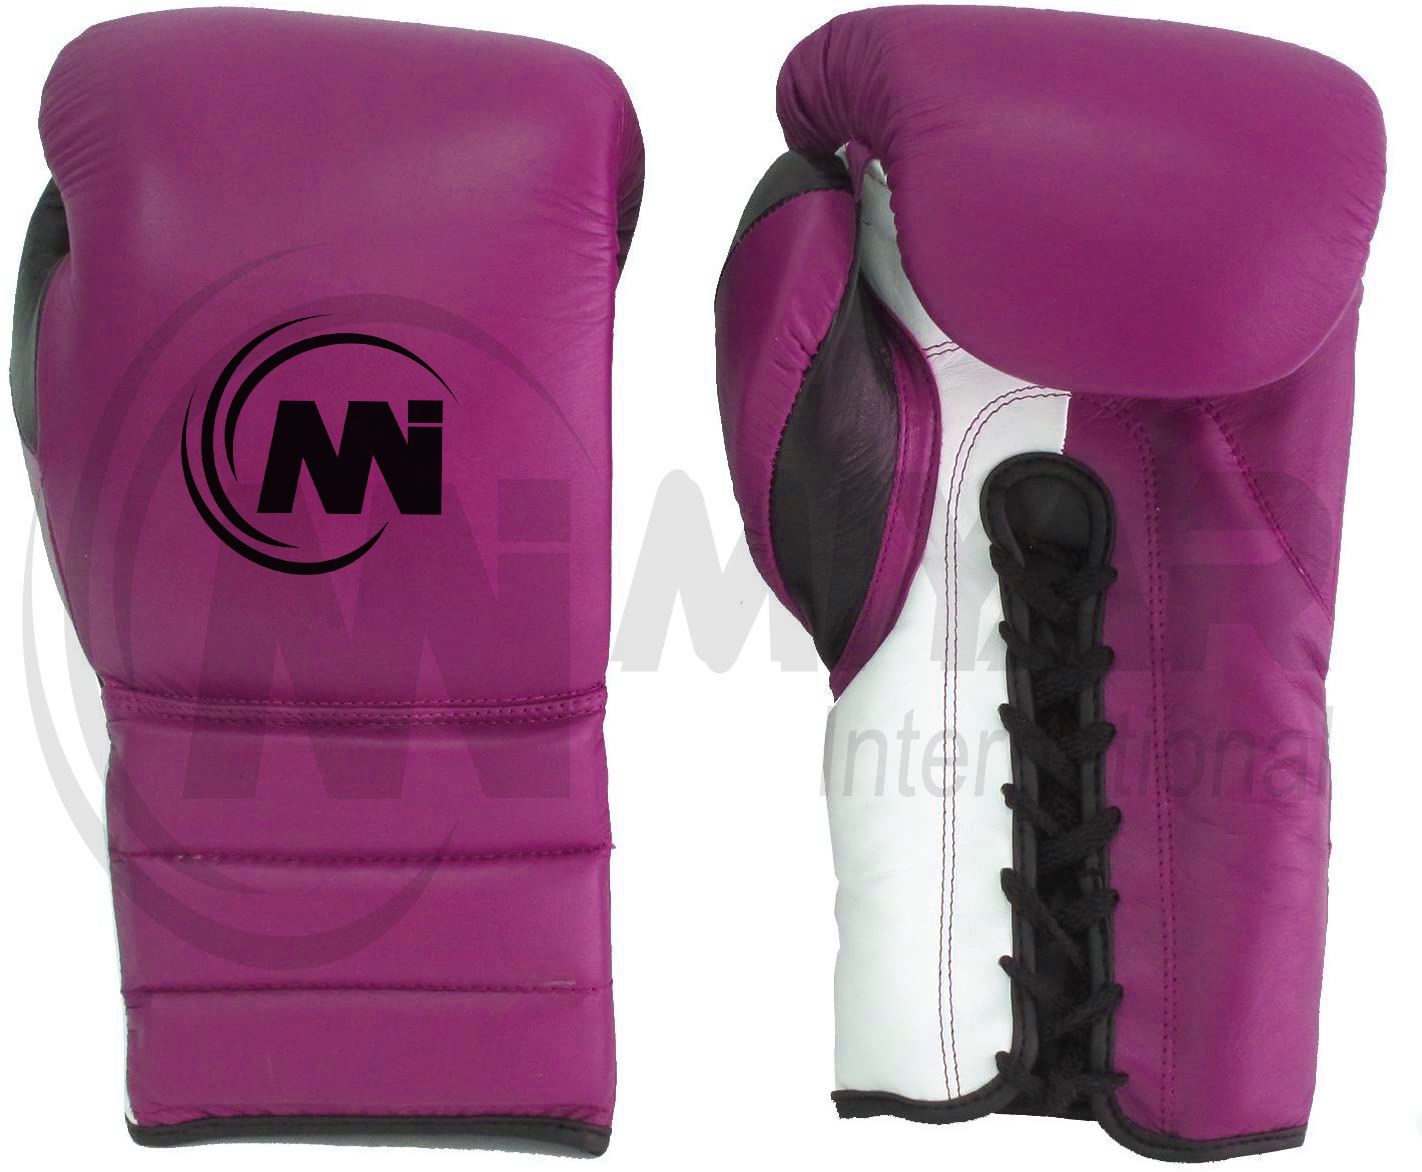 High Quality Leather Boxing Gloves Professional Boxing Gloves